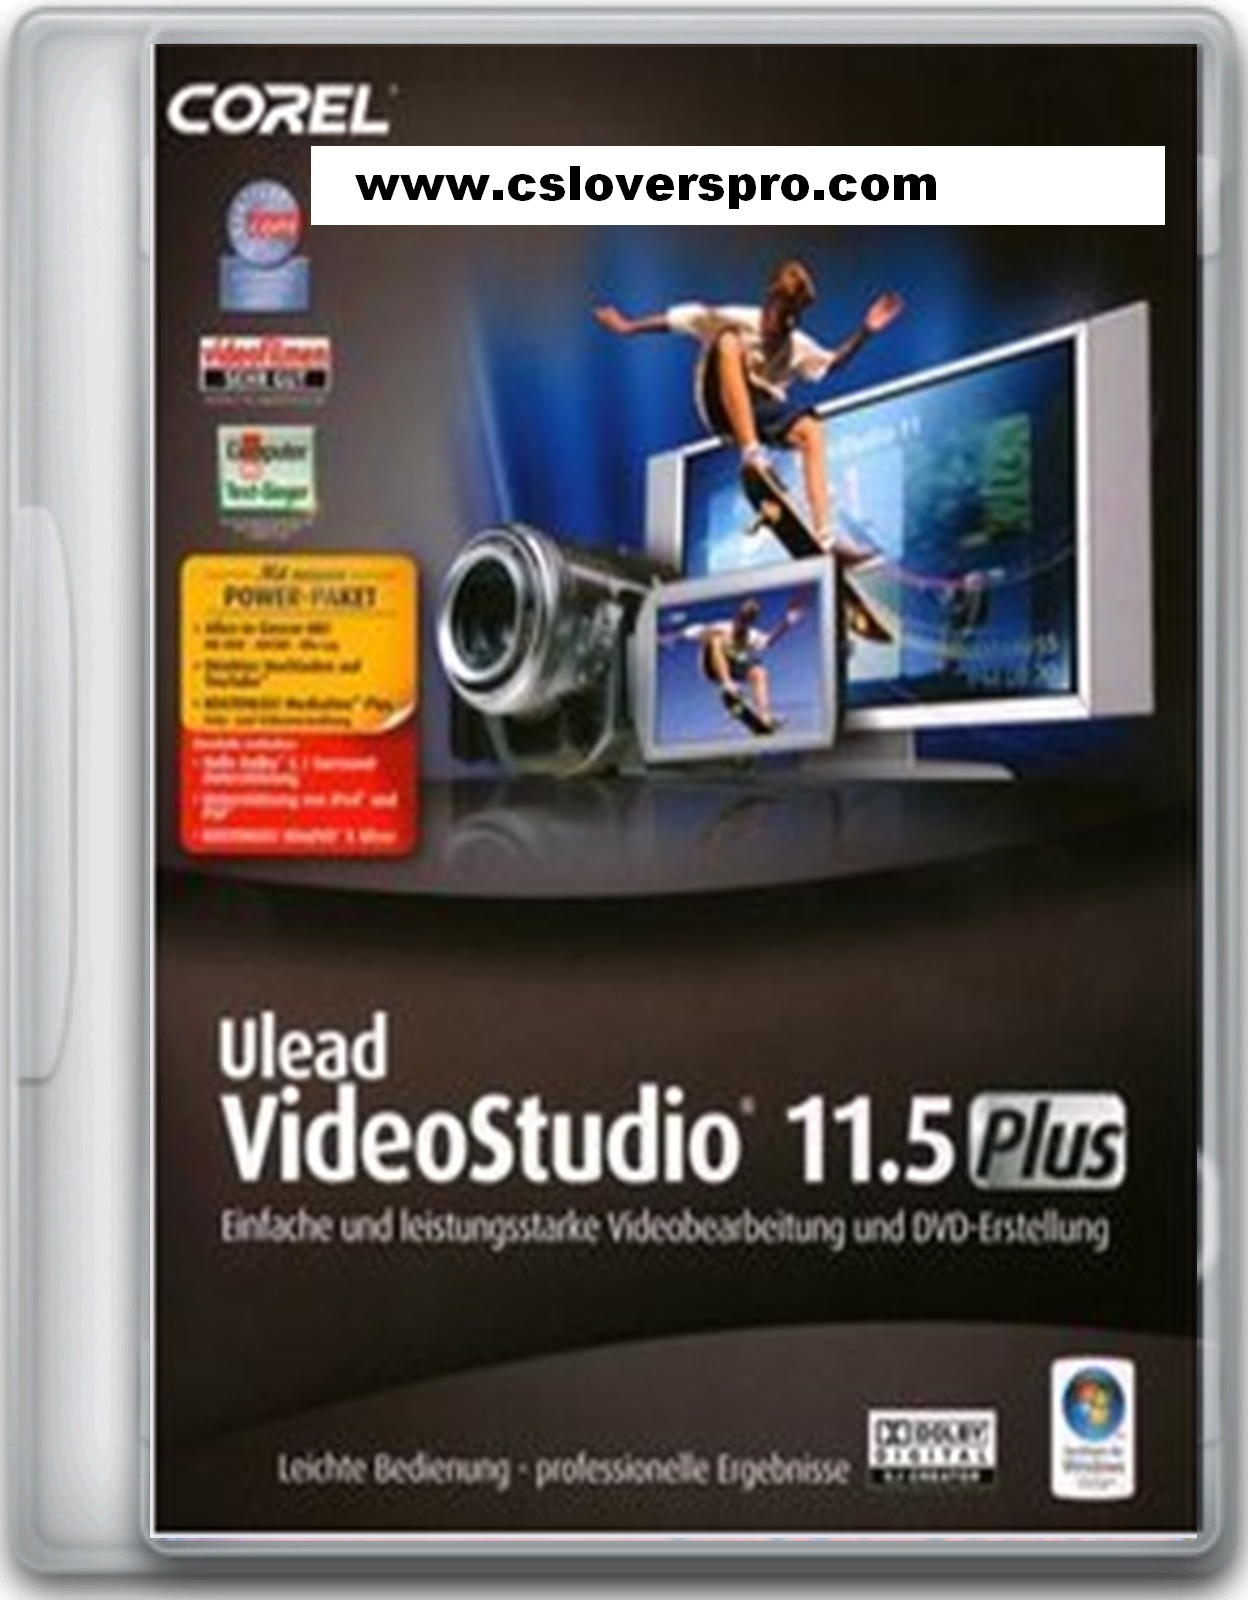 Ulead videostudio plus v11.5 with dolby digital power pack